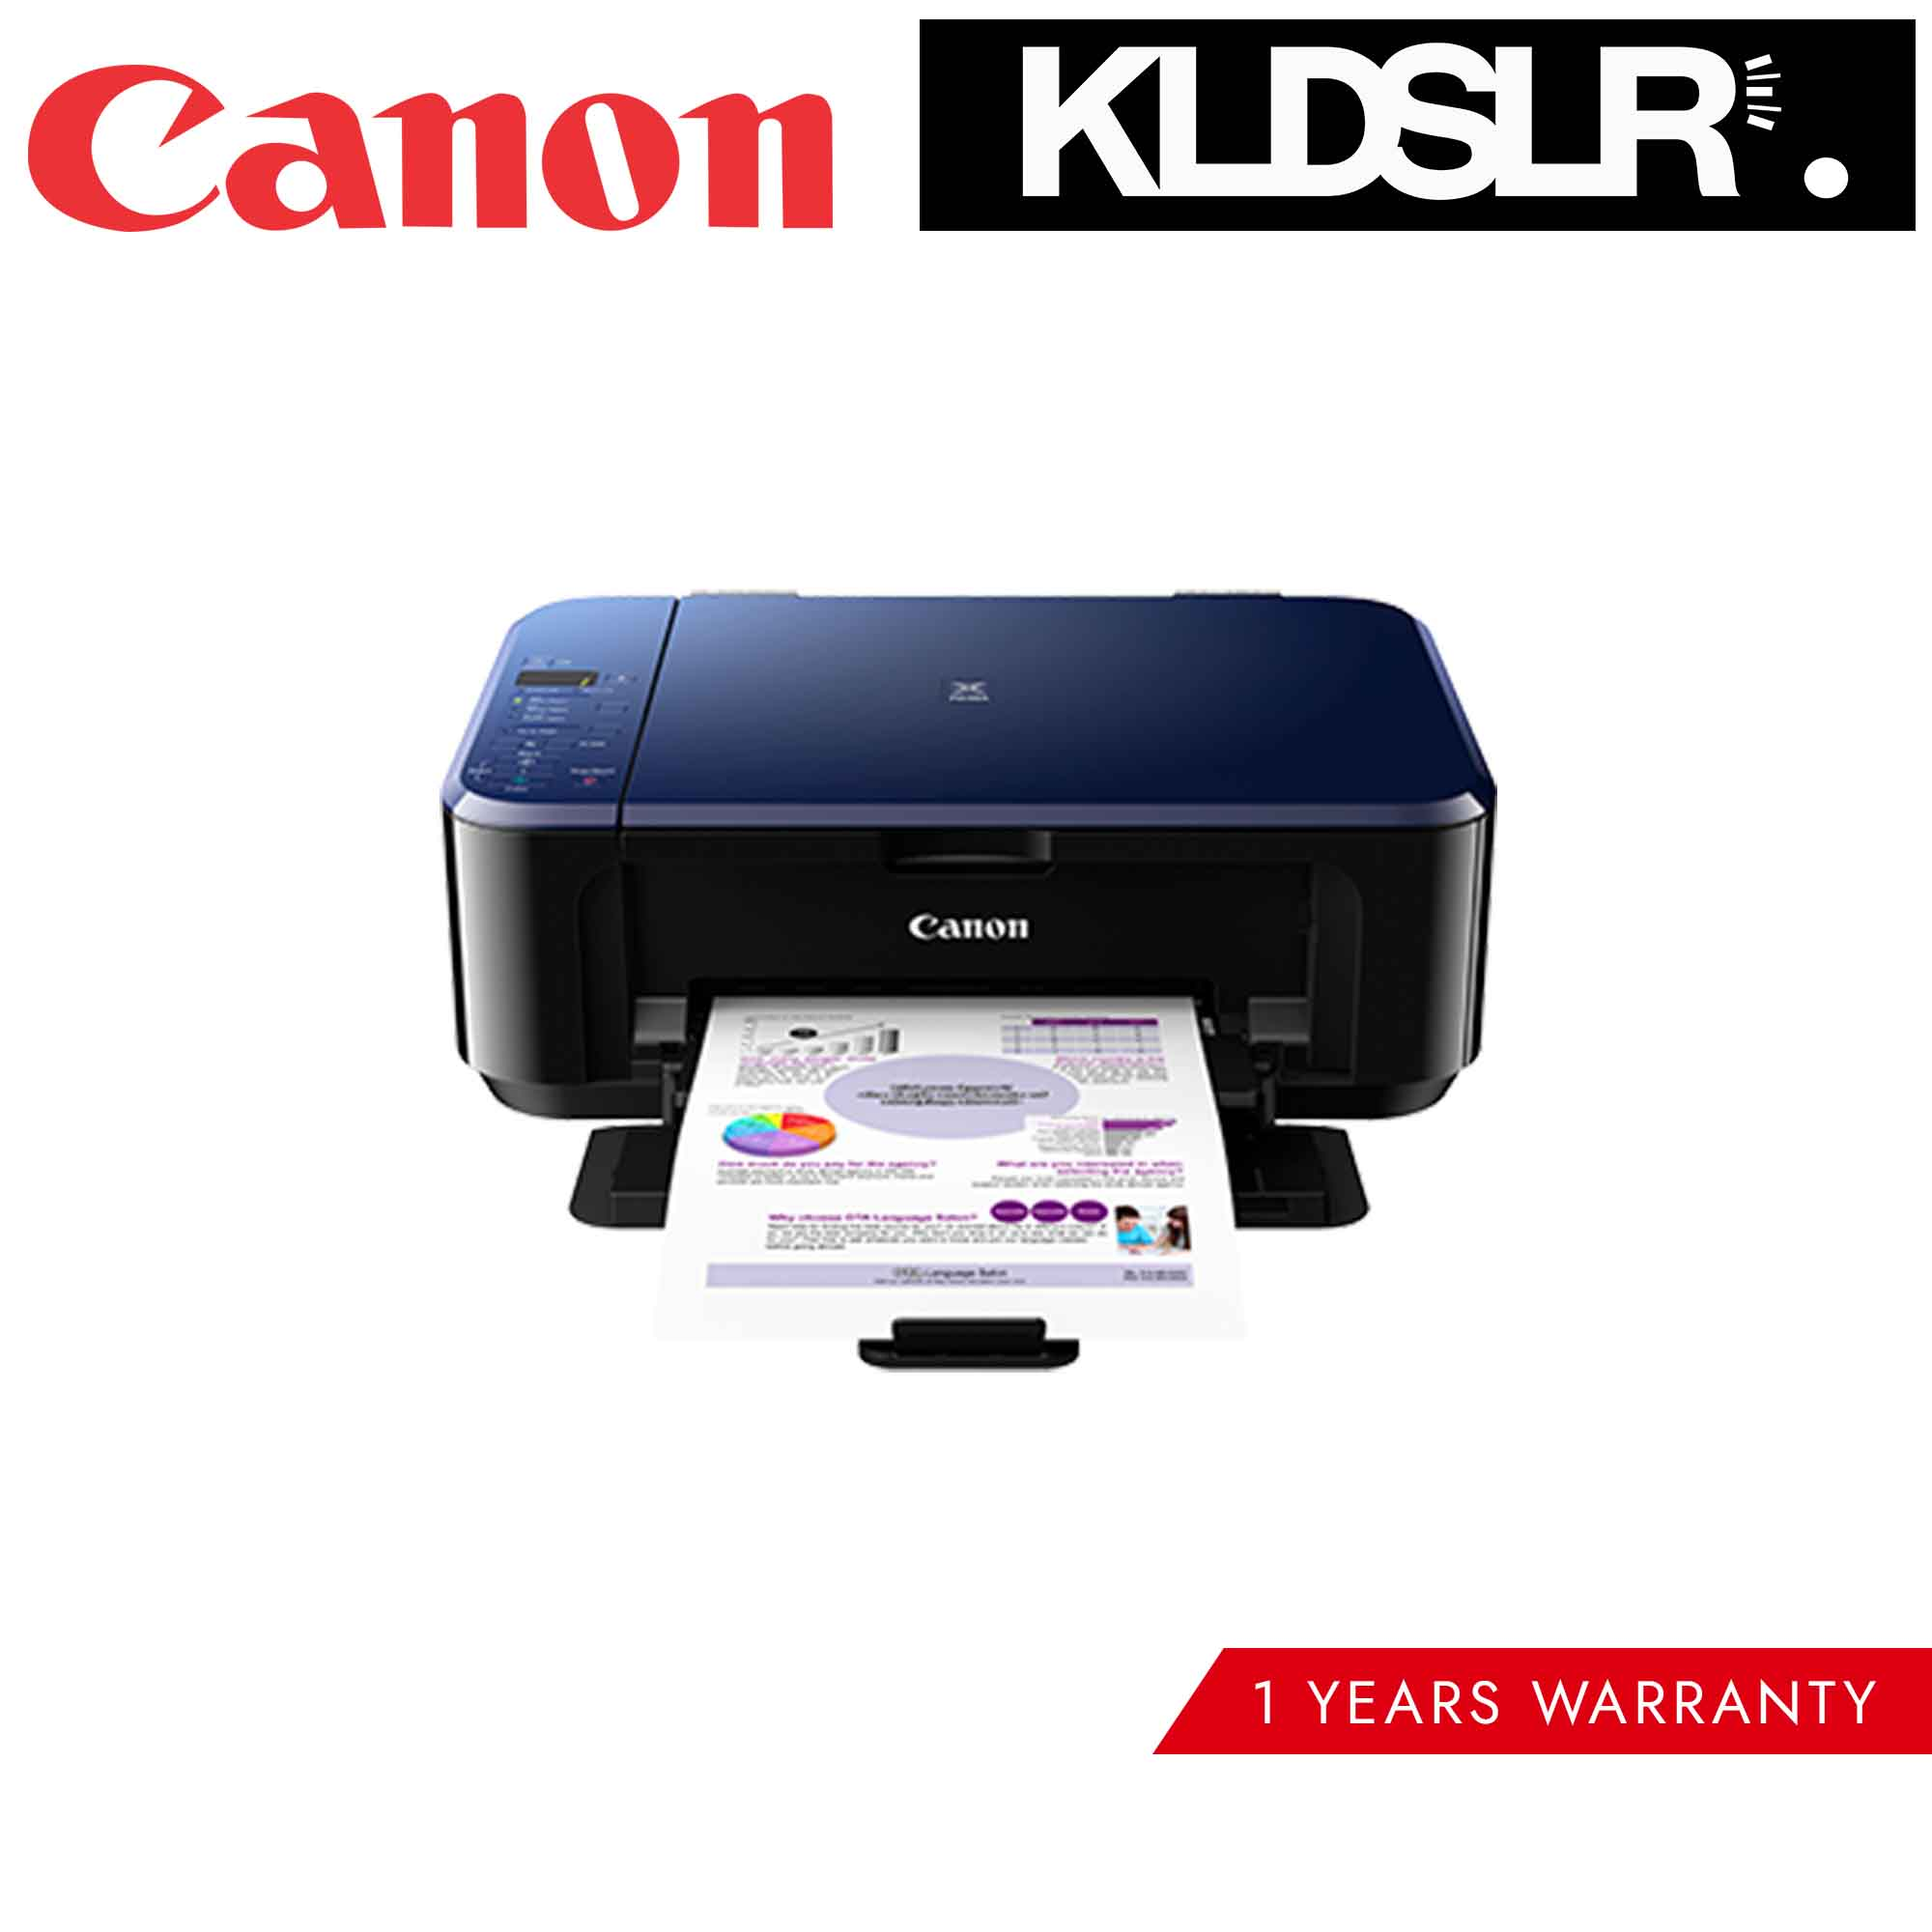 Canon Pixma E510 Ink Efficient 3 in 1 Inkjet Printer (Canon Malaysia)